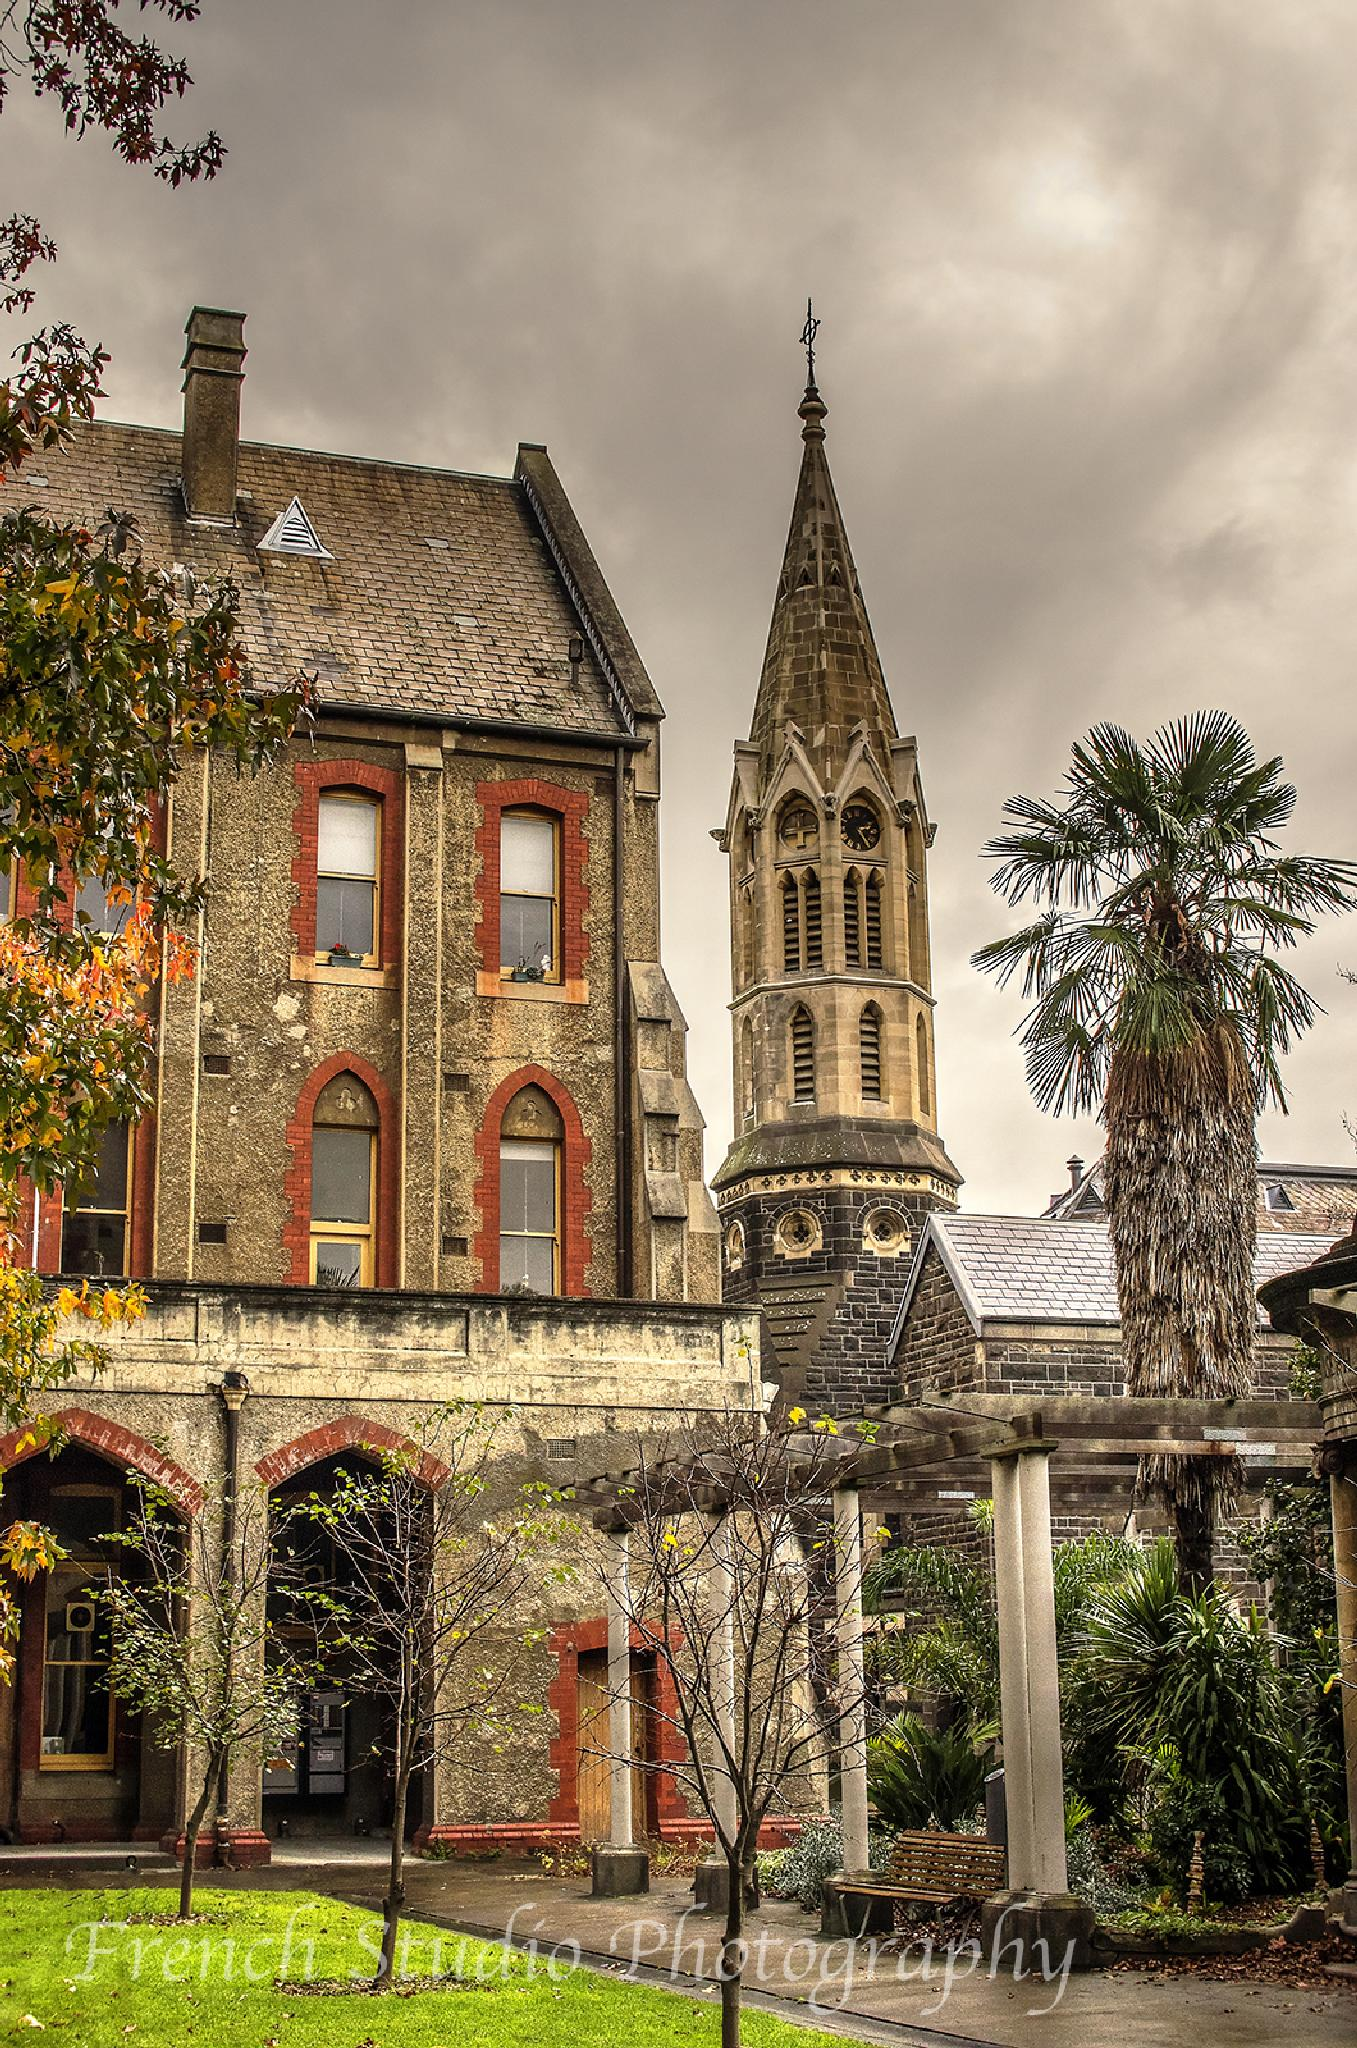 A cloudy day at the convent by gerardrotse